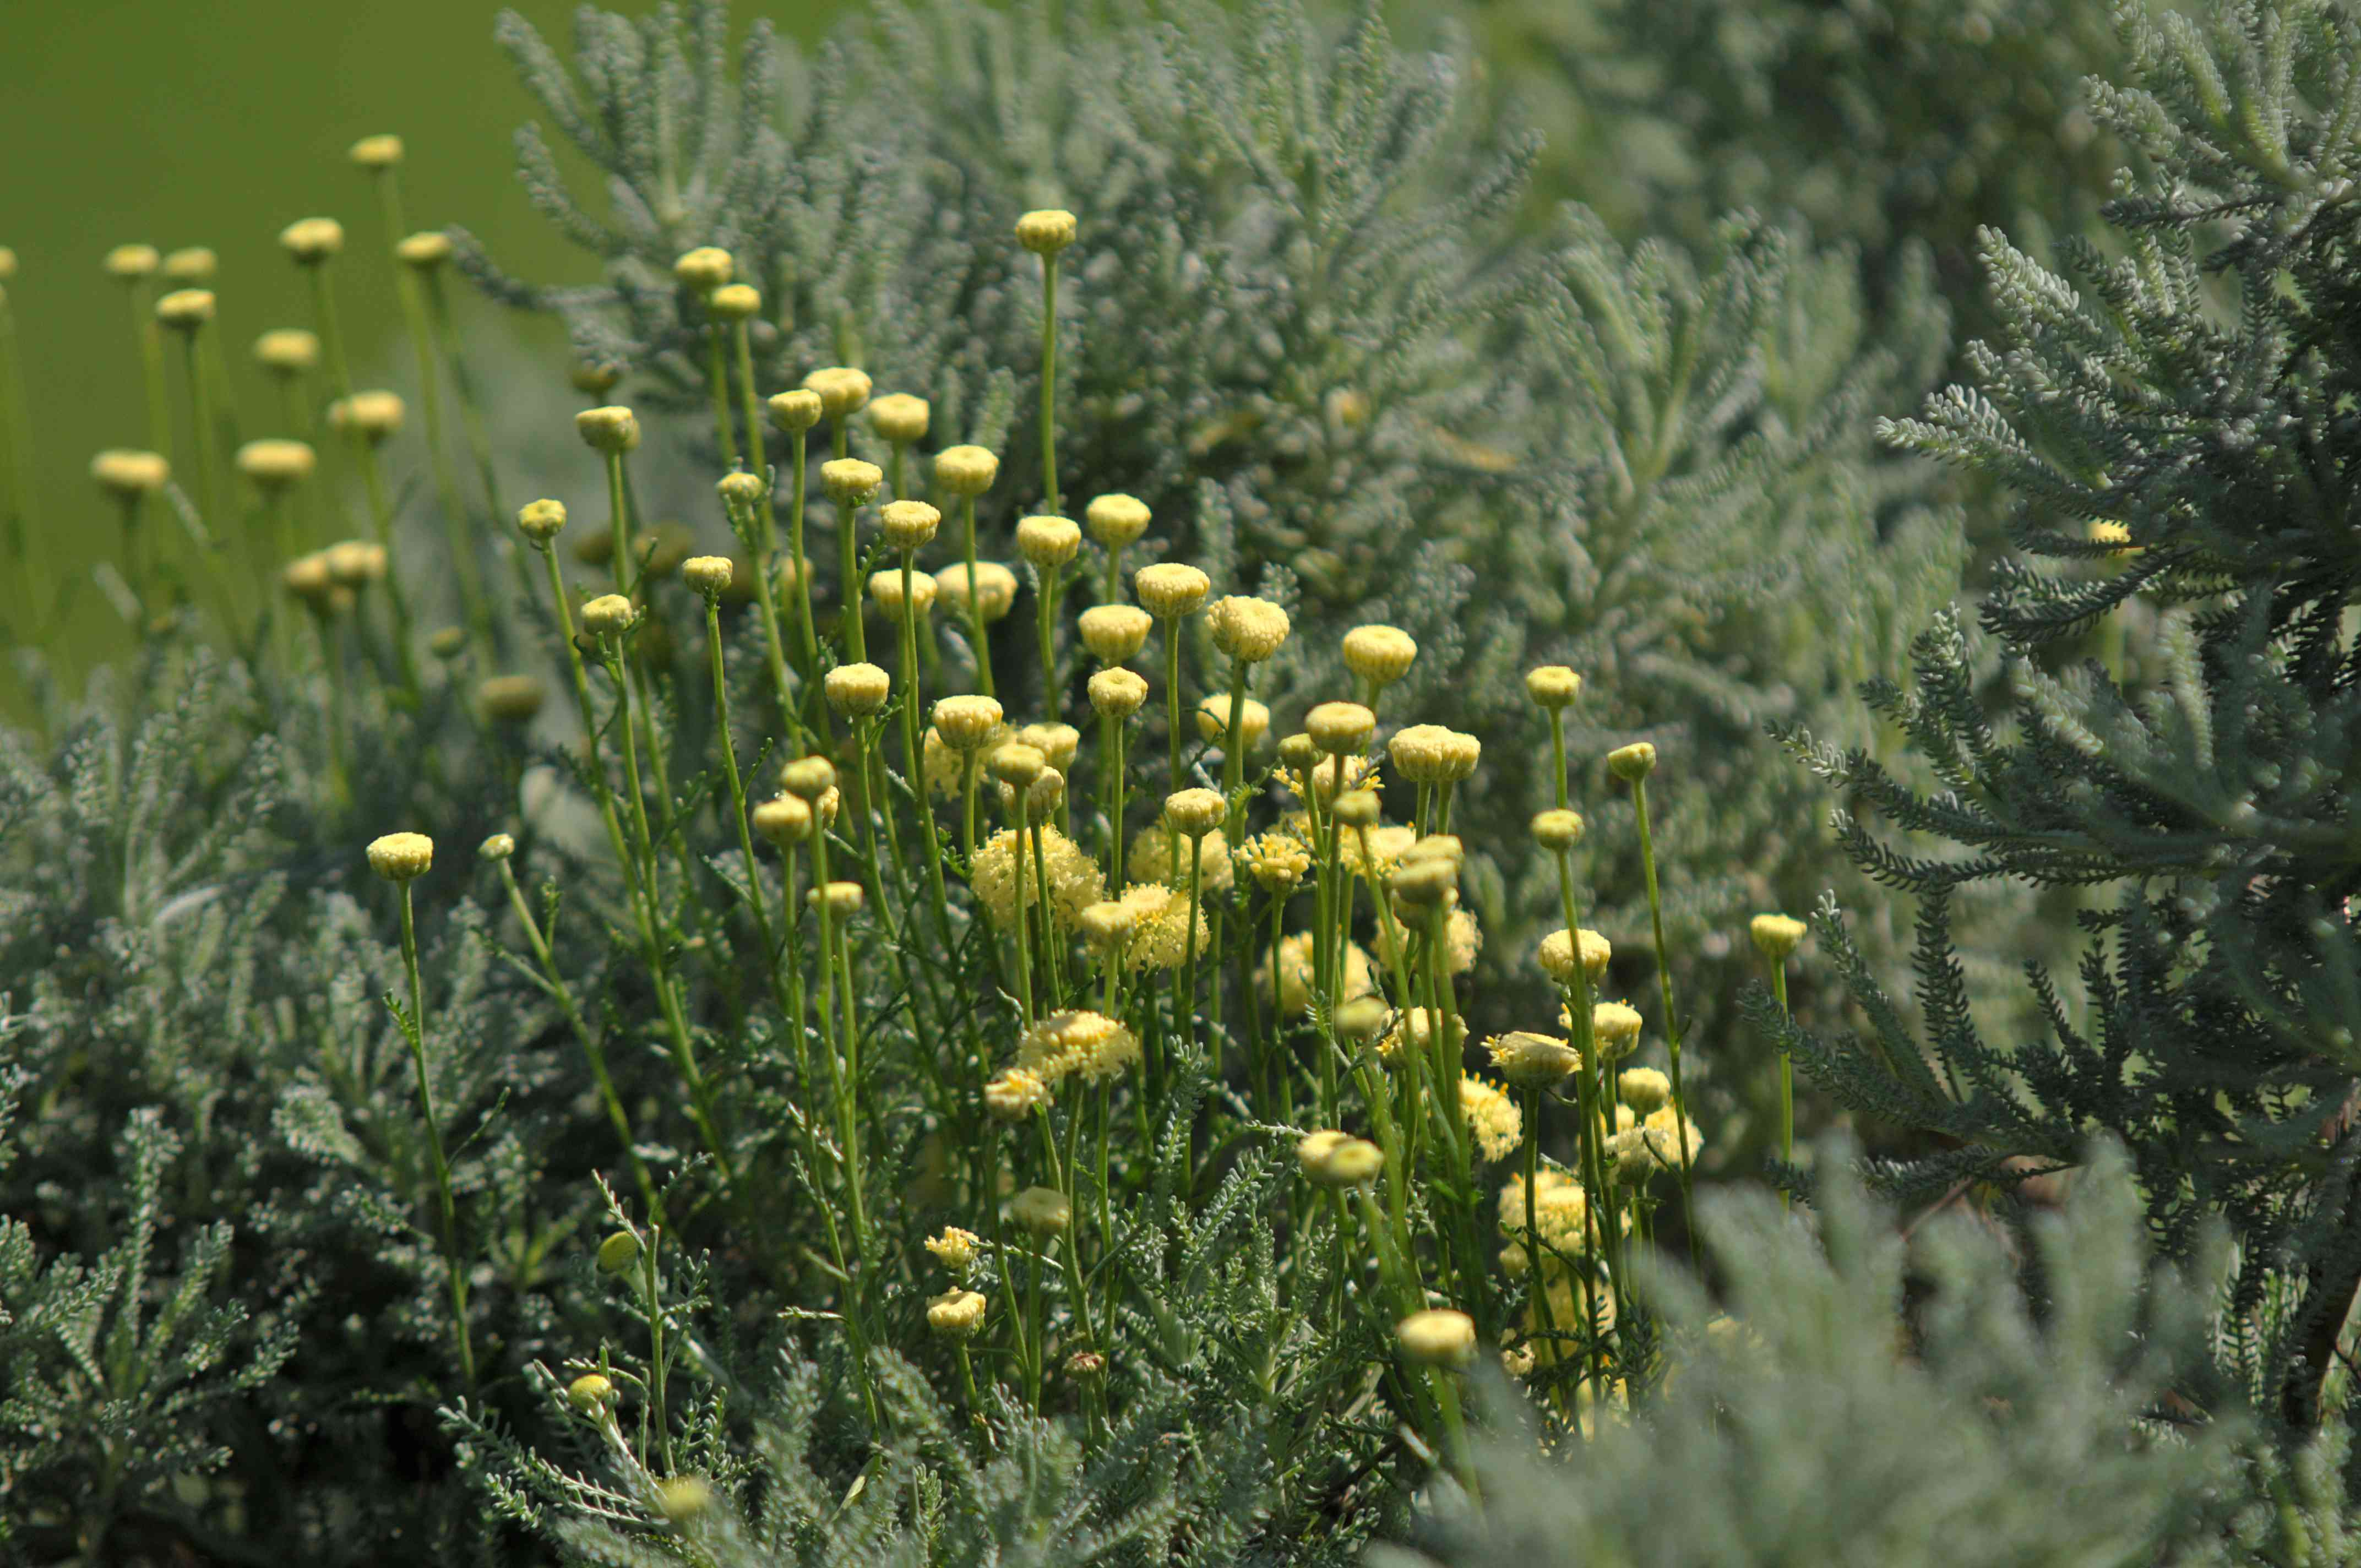 Lavender cotton plant with small yellow flowers on wiry stems in sunlight